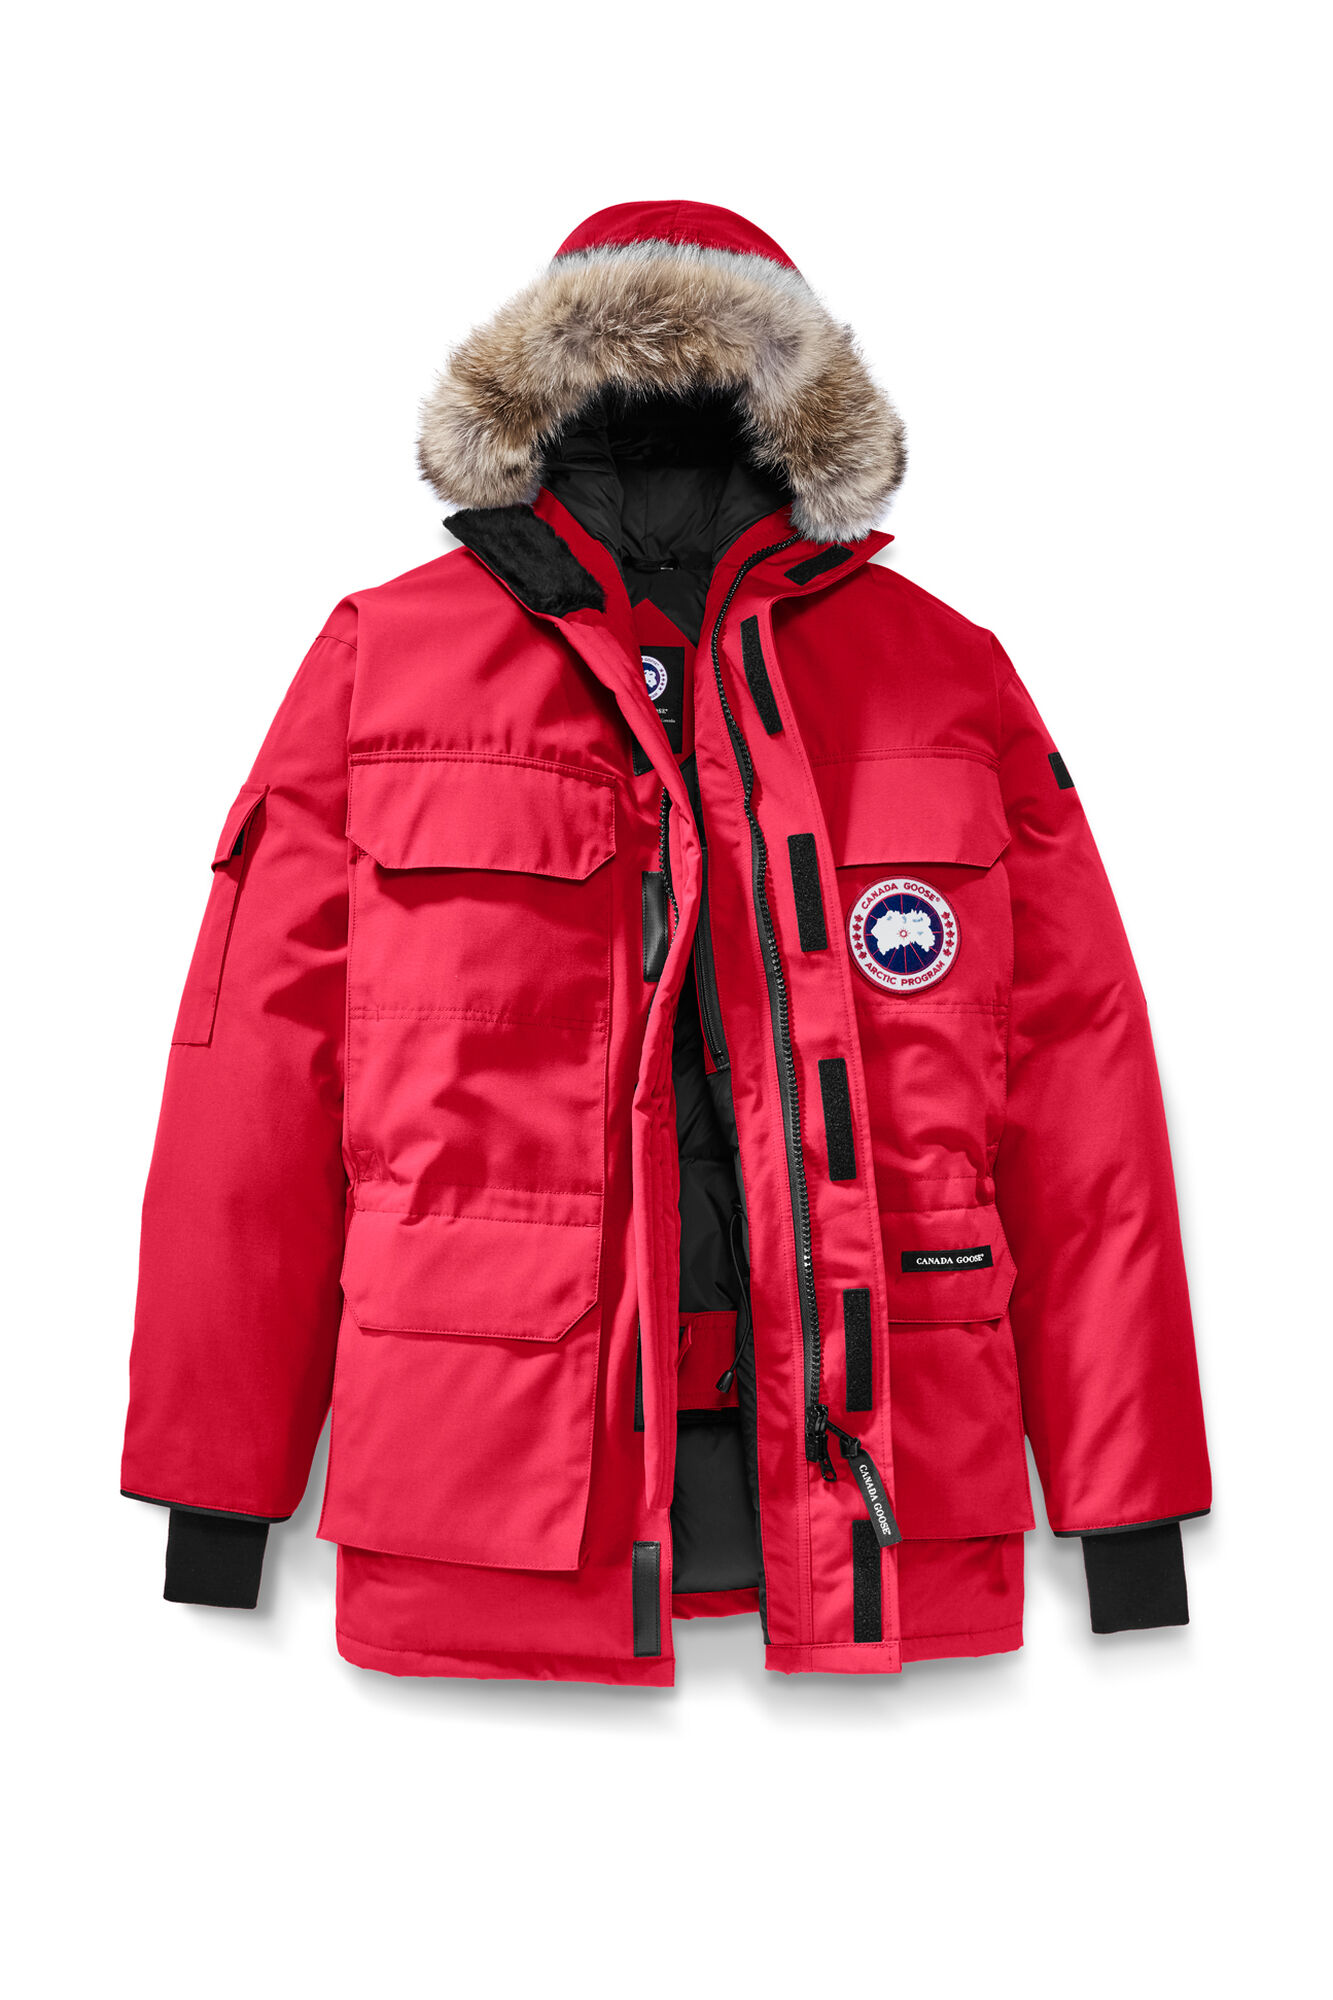 Canada Goose coats replica fake - Men's Arctic Program Expedition Parka | Canada Goose?